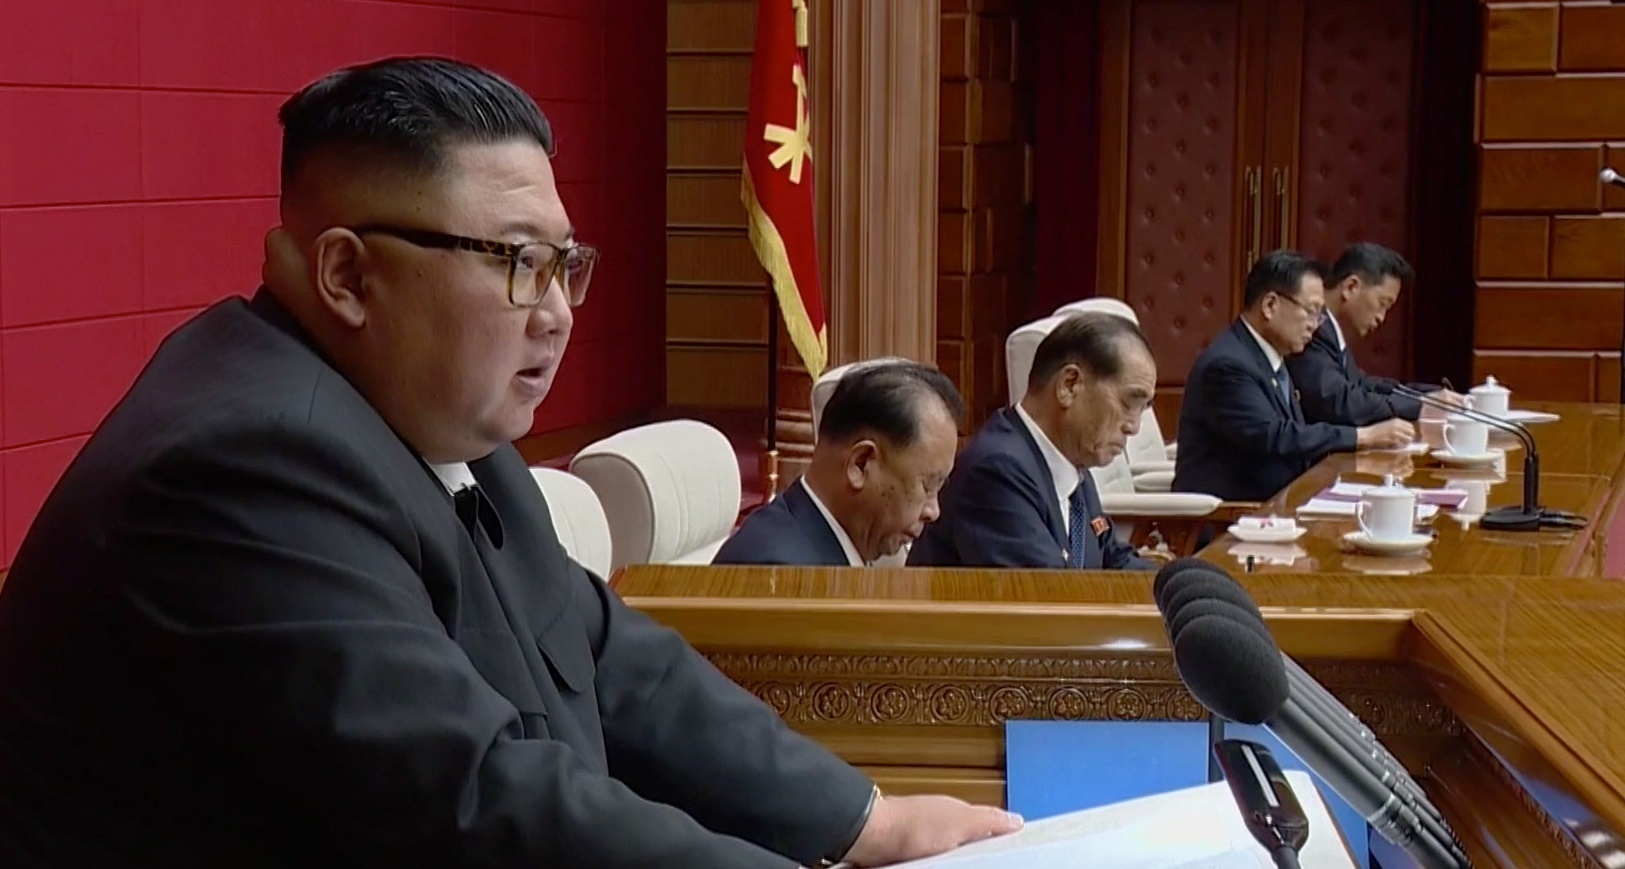 Kim Jong Un was elusive in 2020, but emerged for a surge of Politburo meetings